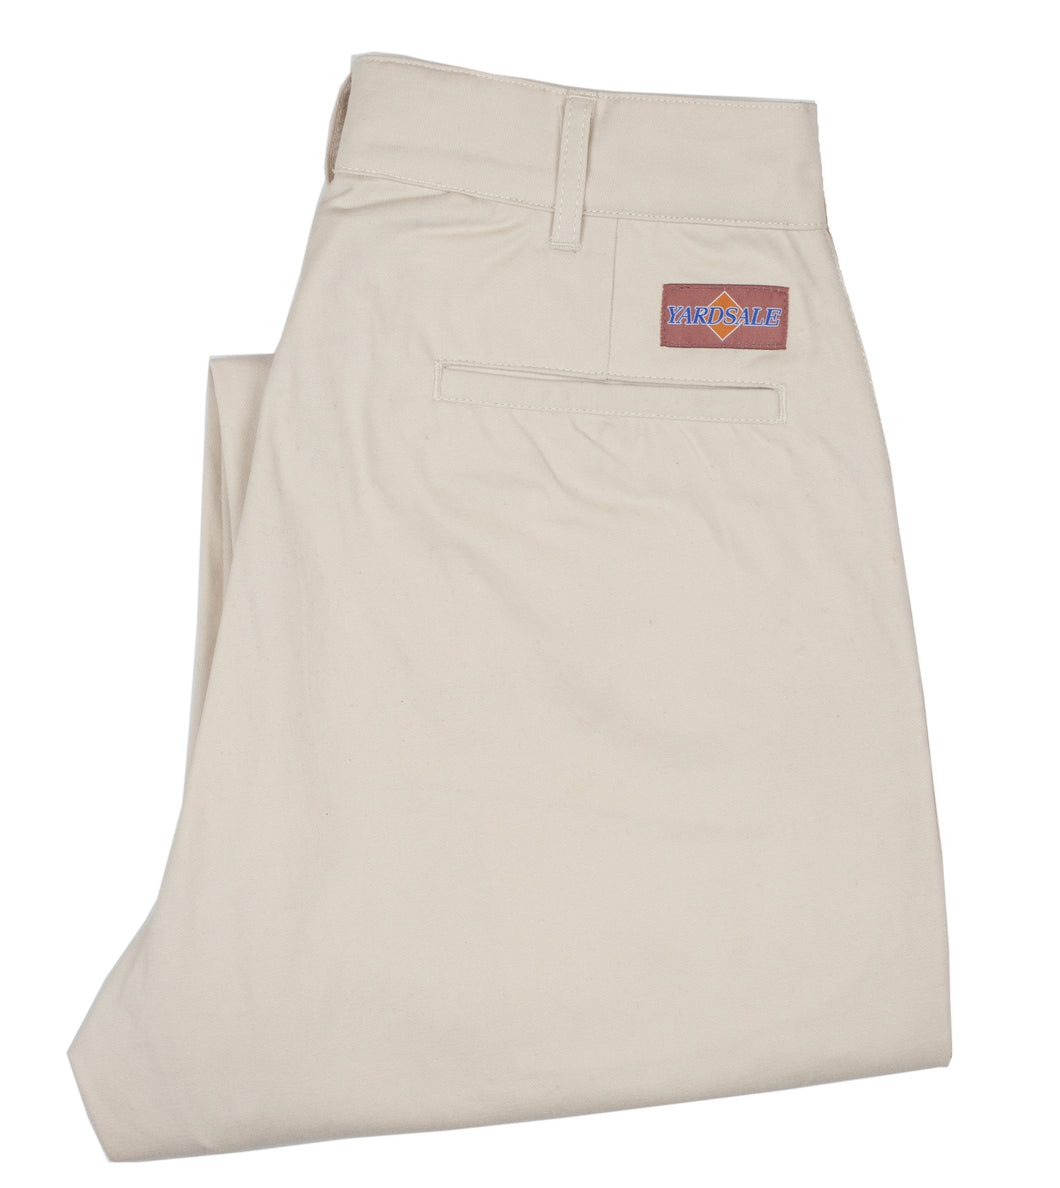 Cream slacks